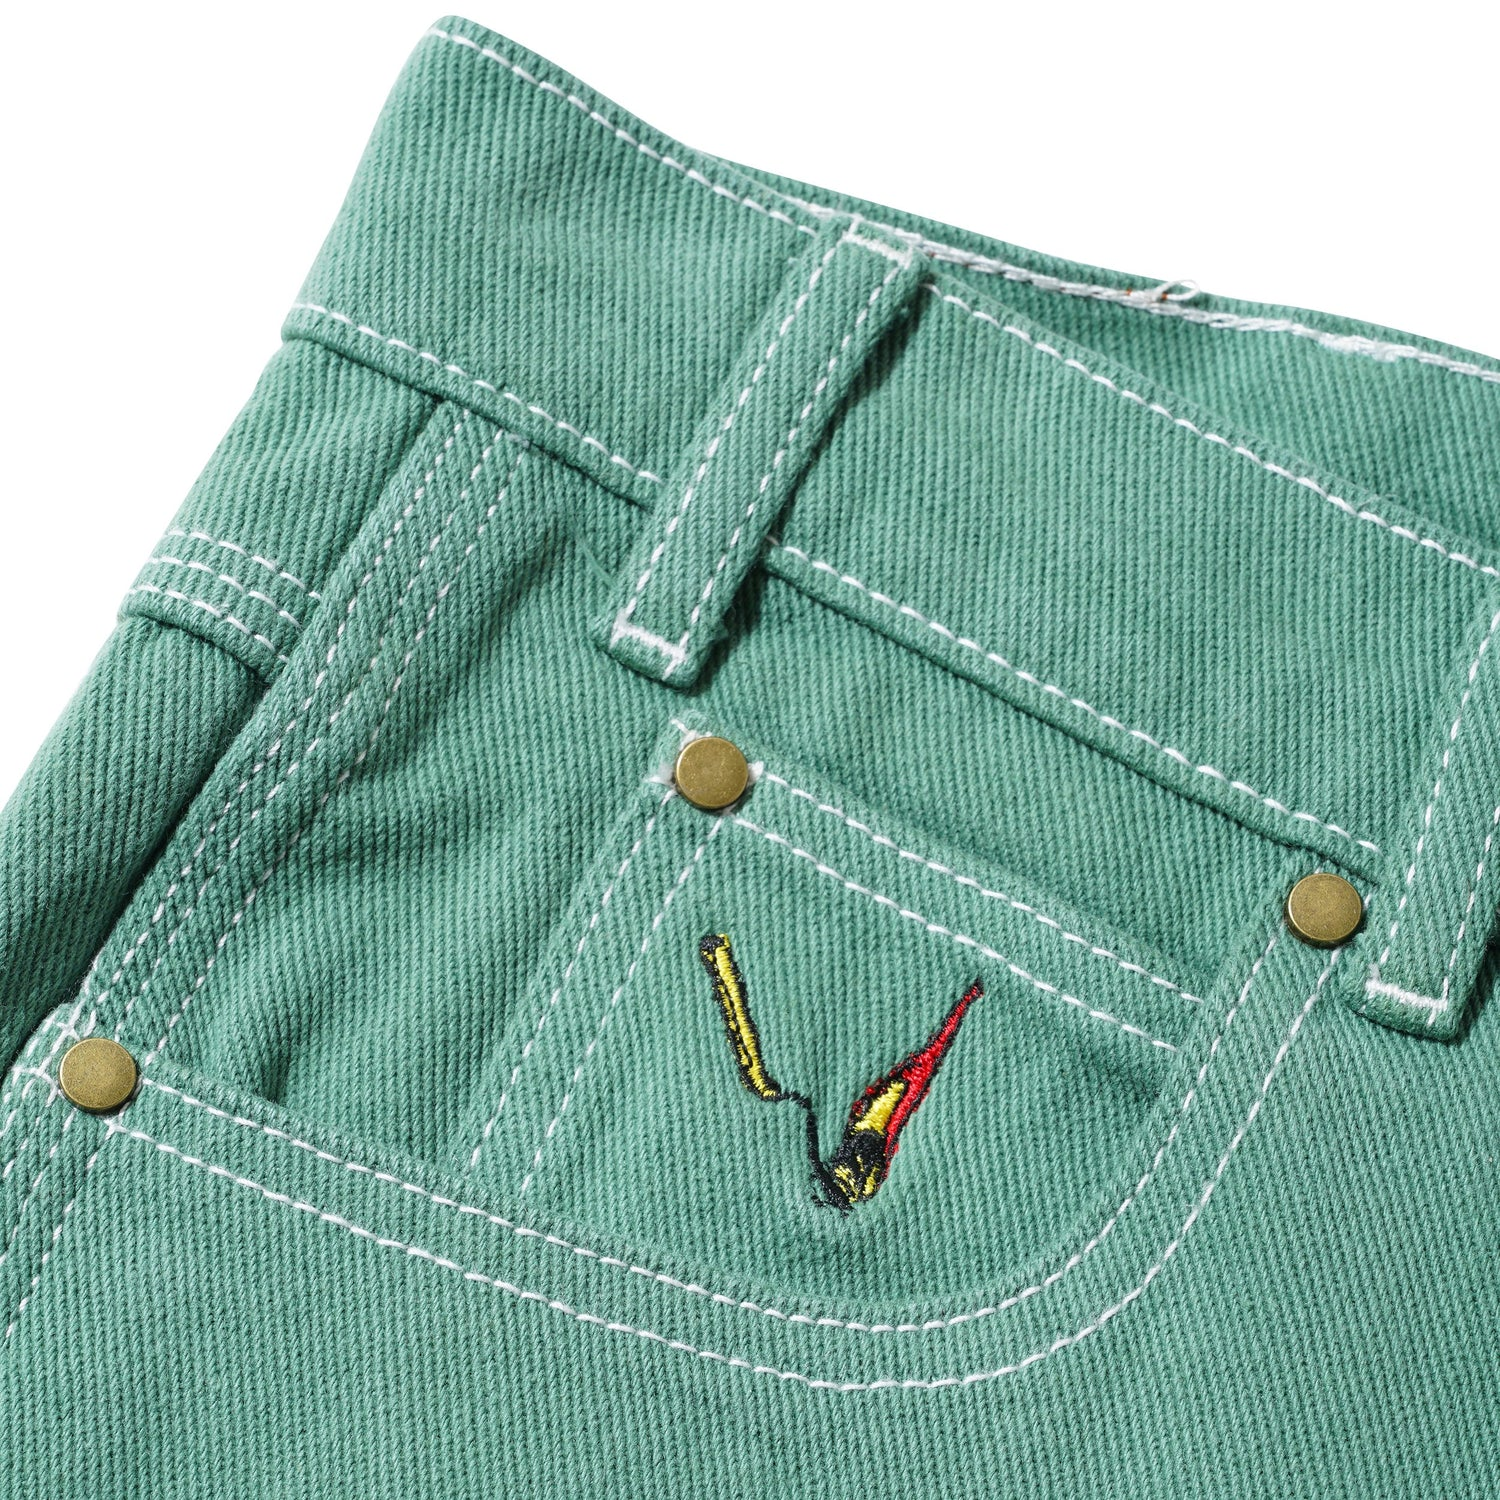 Overdye Denim Work Pants, Alpine